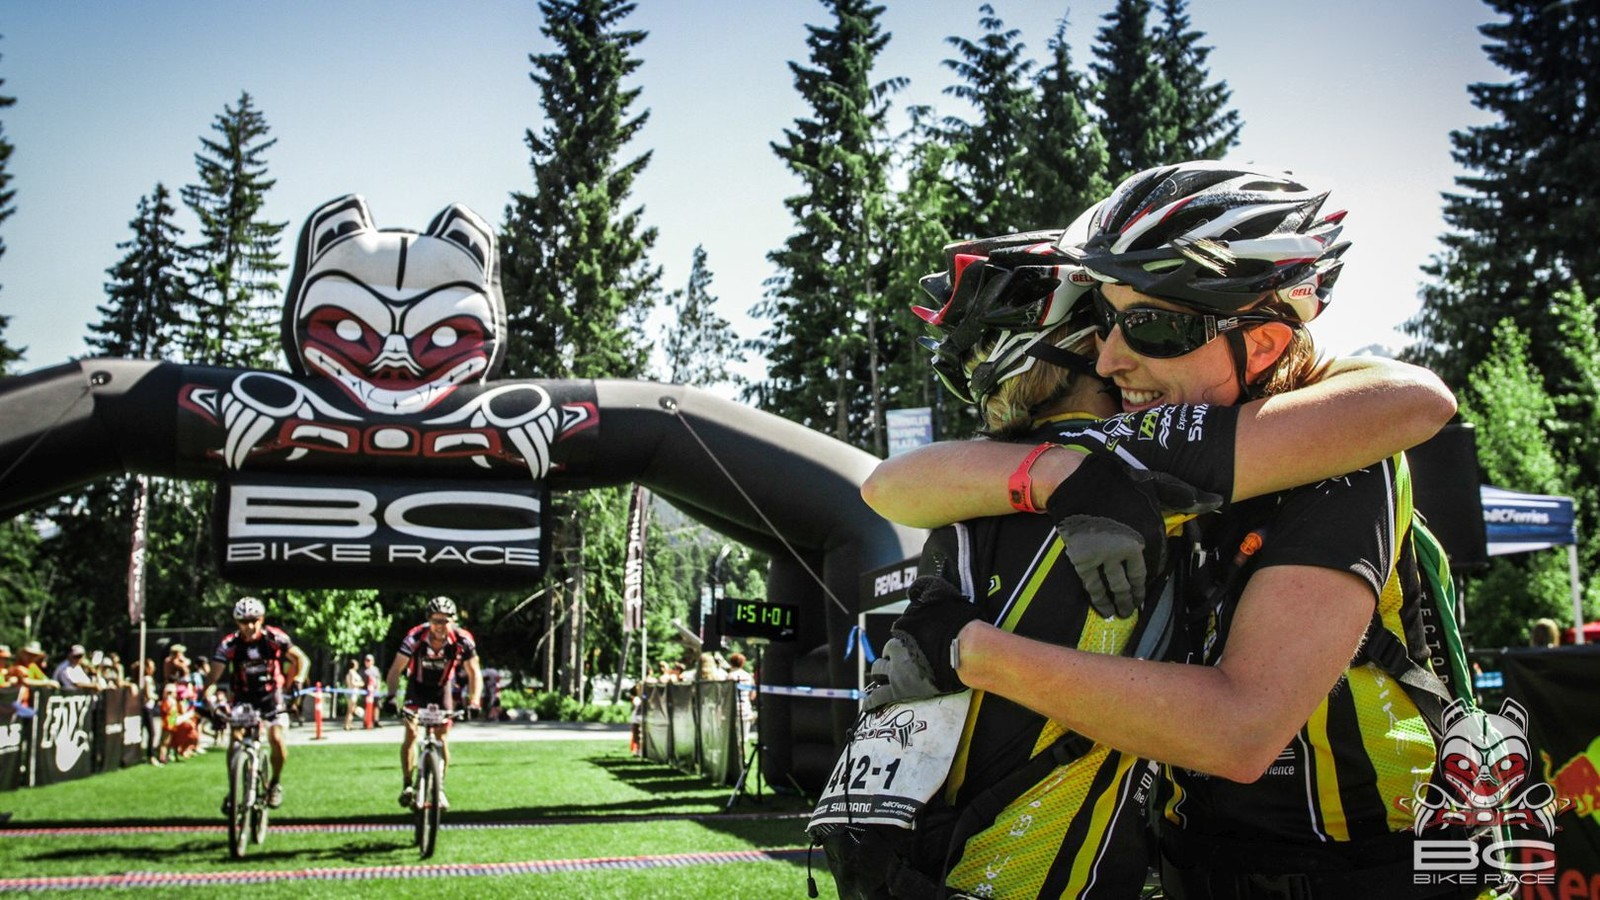 BC Bike Race Plans for the Future